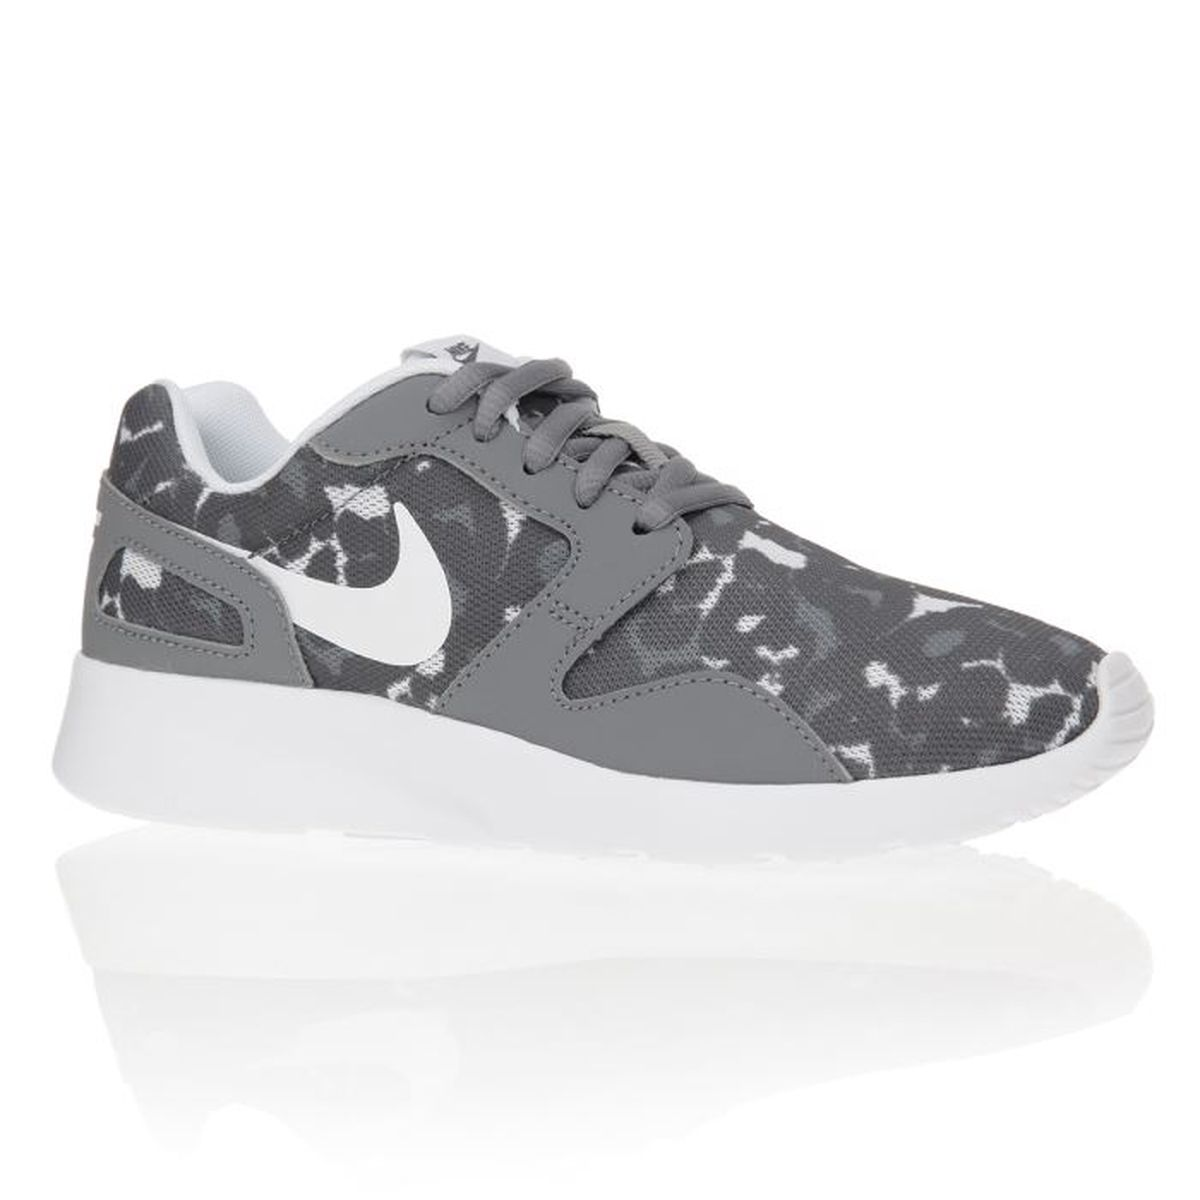 nike baskets kaishi print chaussures femme femme gris et blanc achat vente nike baskets. Black Bedroom Furniture Sets. Home Design Ideas